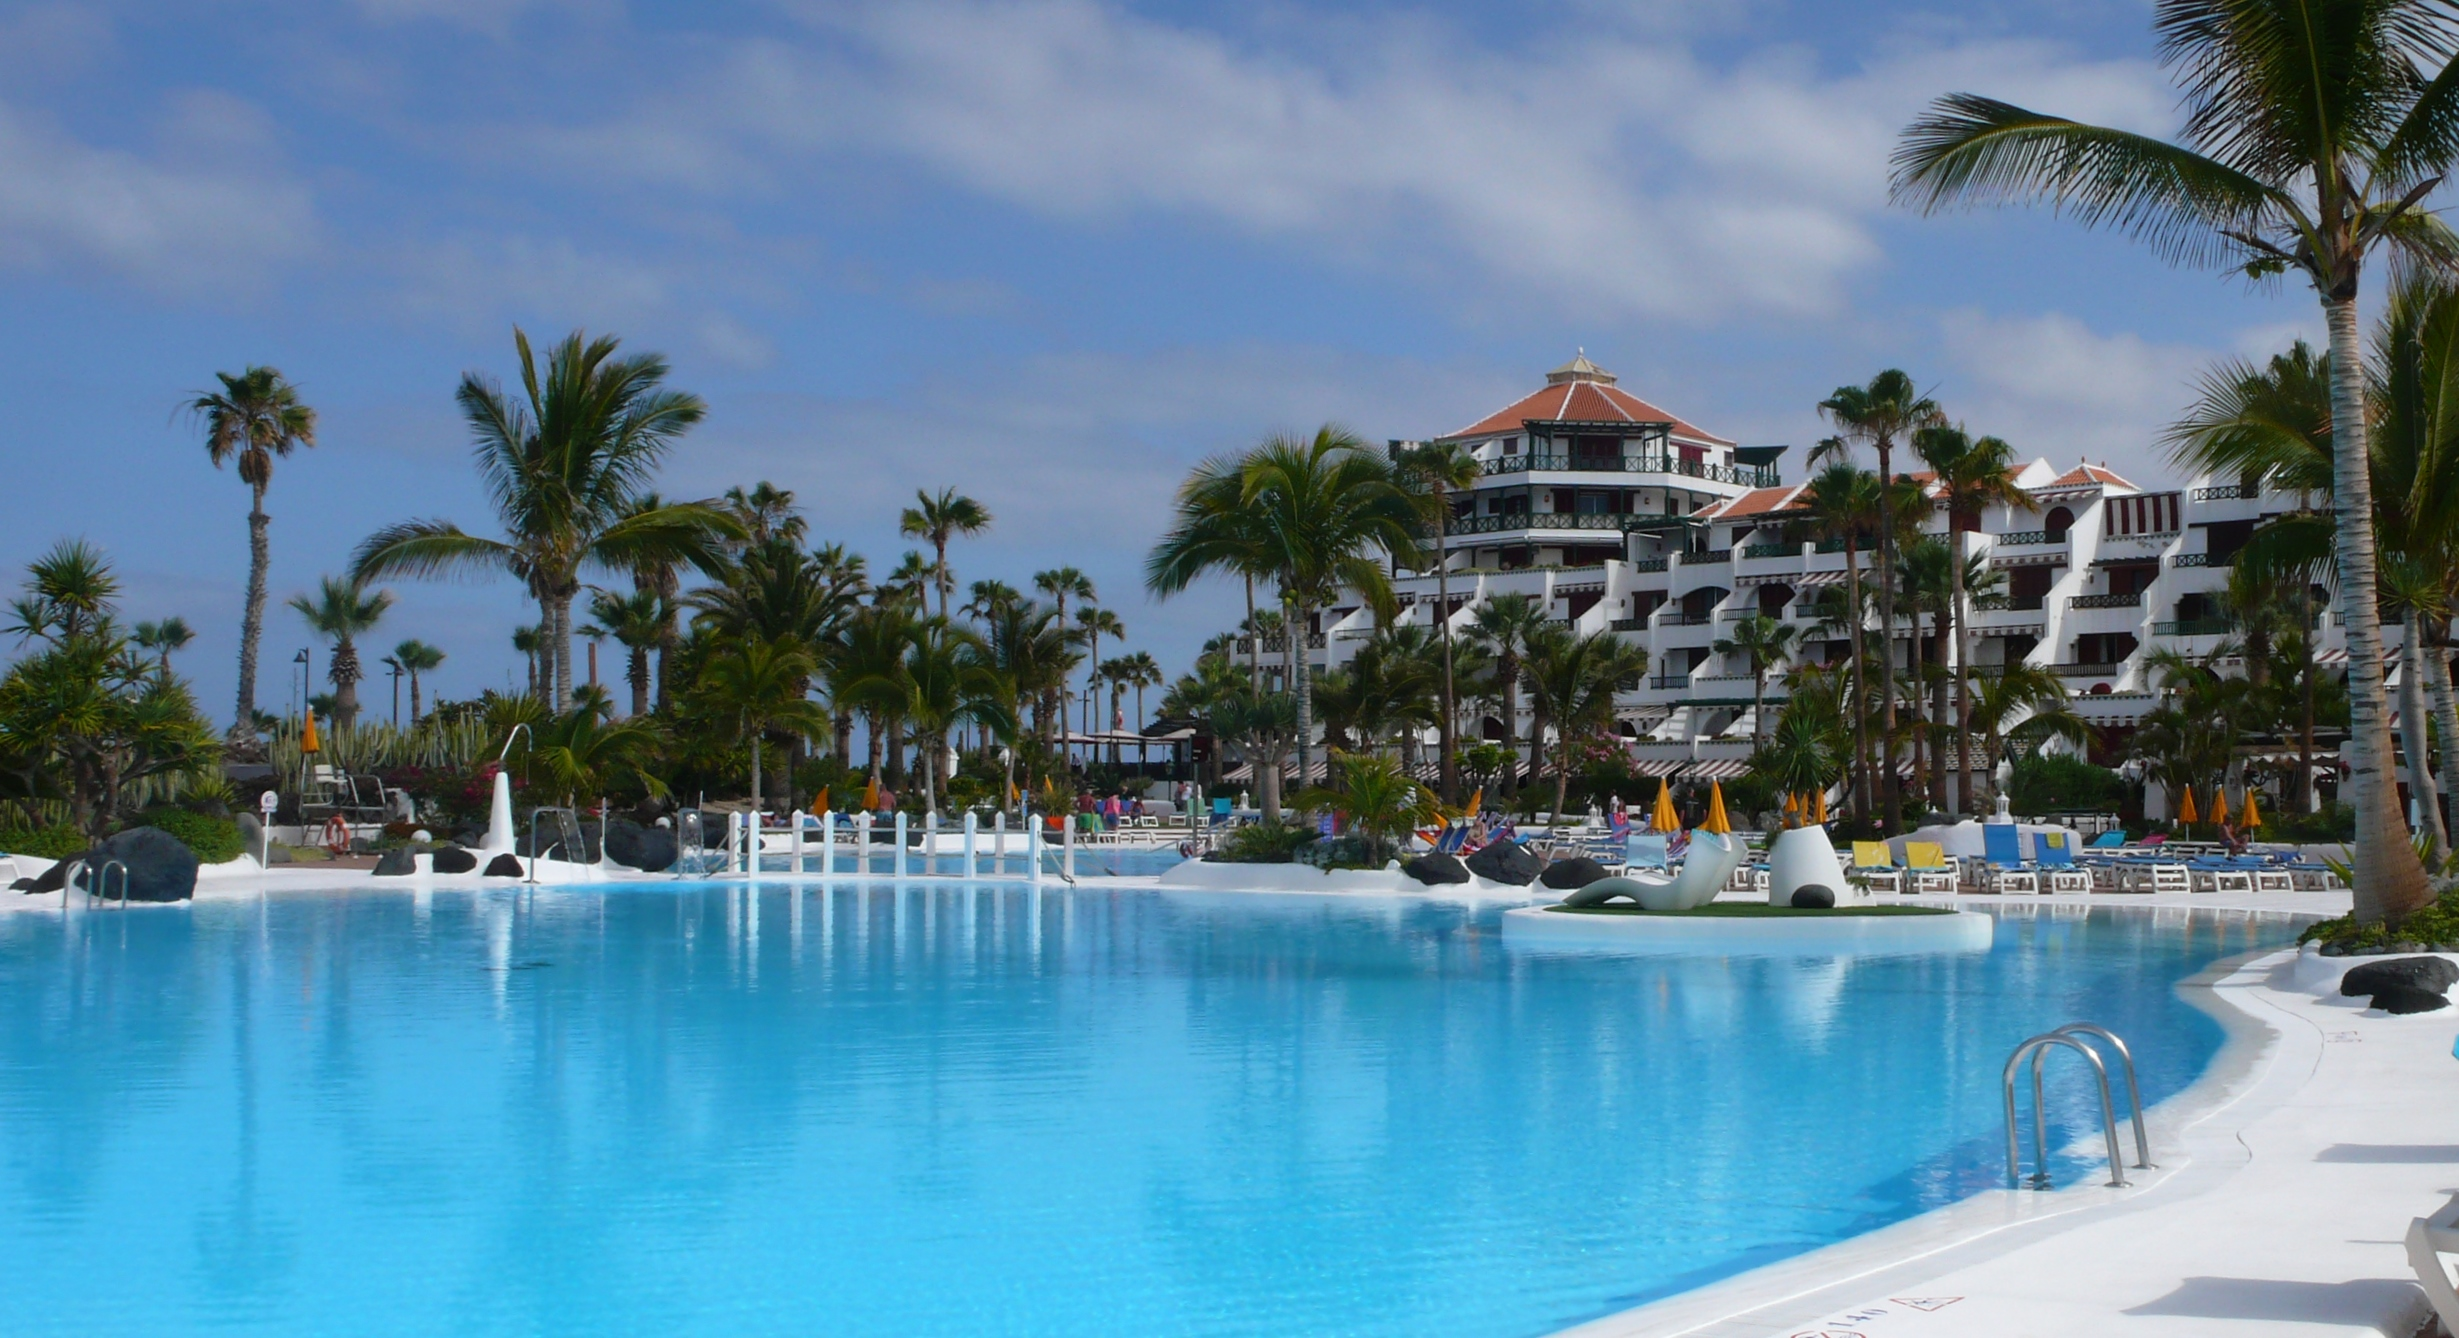 Apartment for Sale at Parque Santiago IV Av Litoral Playa De Las Americas, Tenerife Canary Islands 38660 Spain